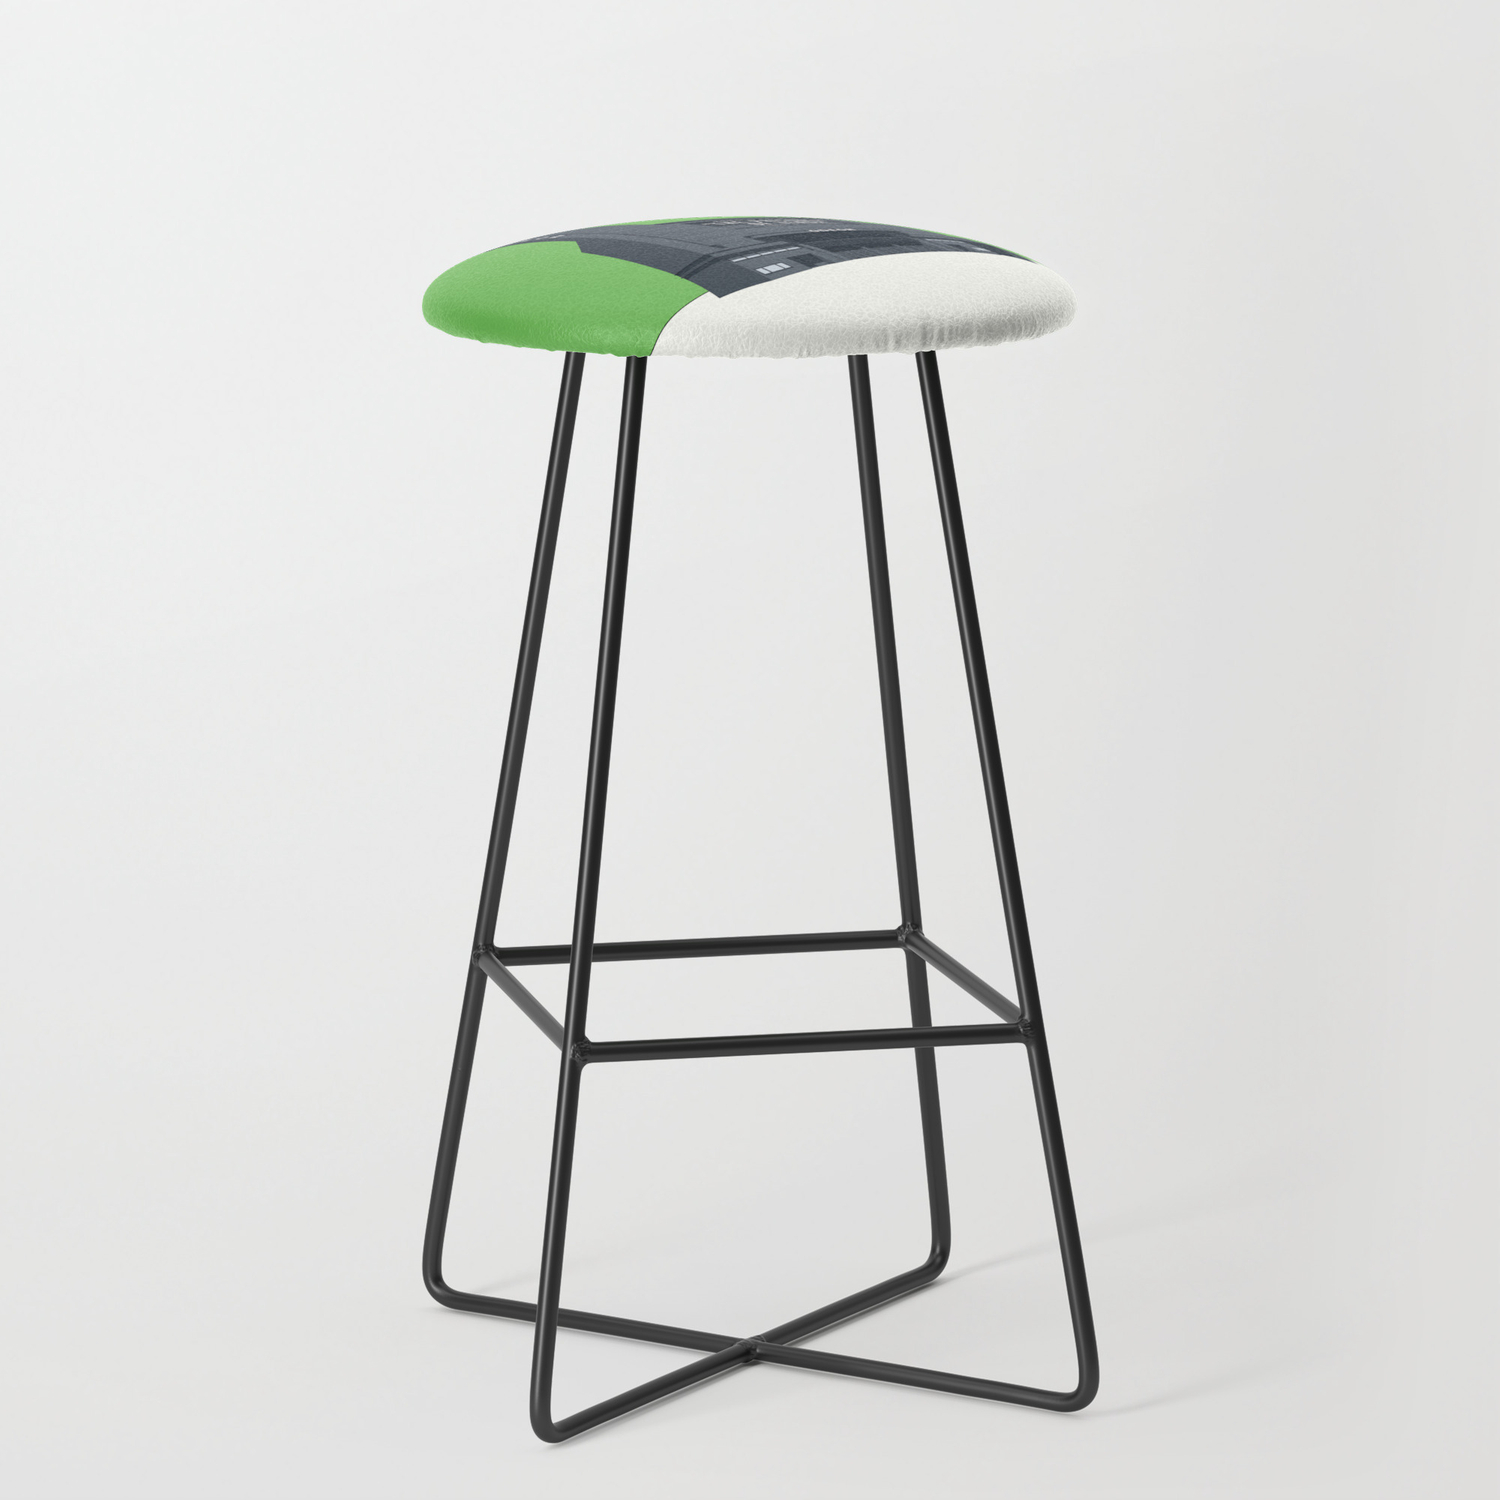 ODEON Leicester Square Bar Stool by adorman